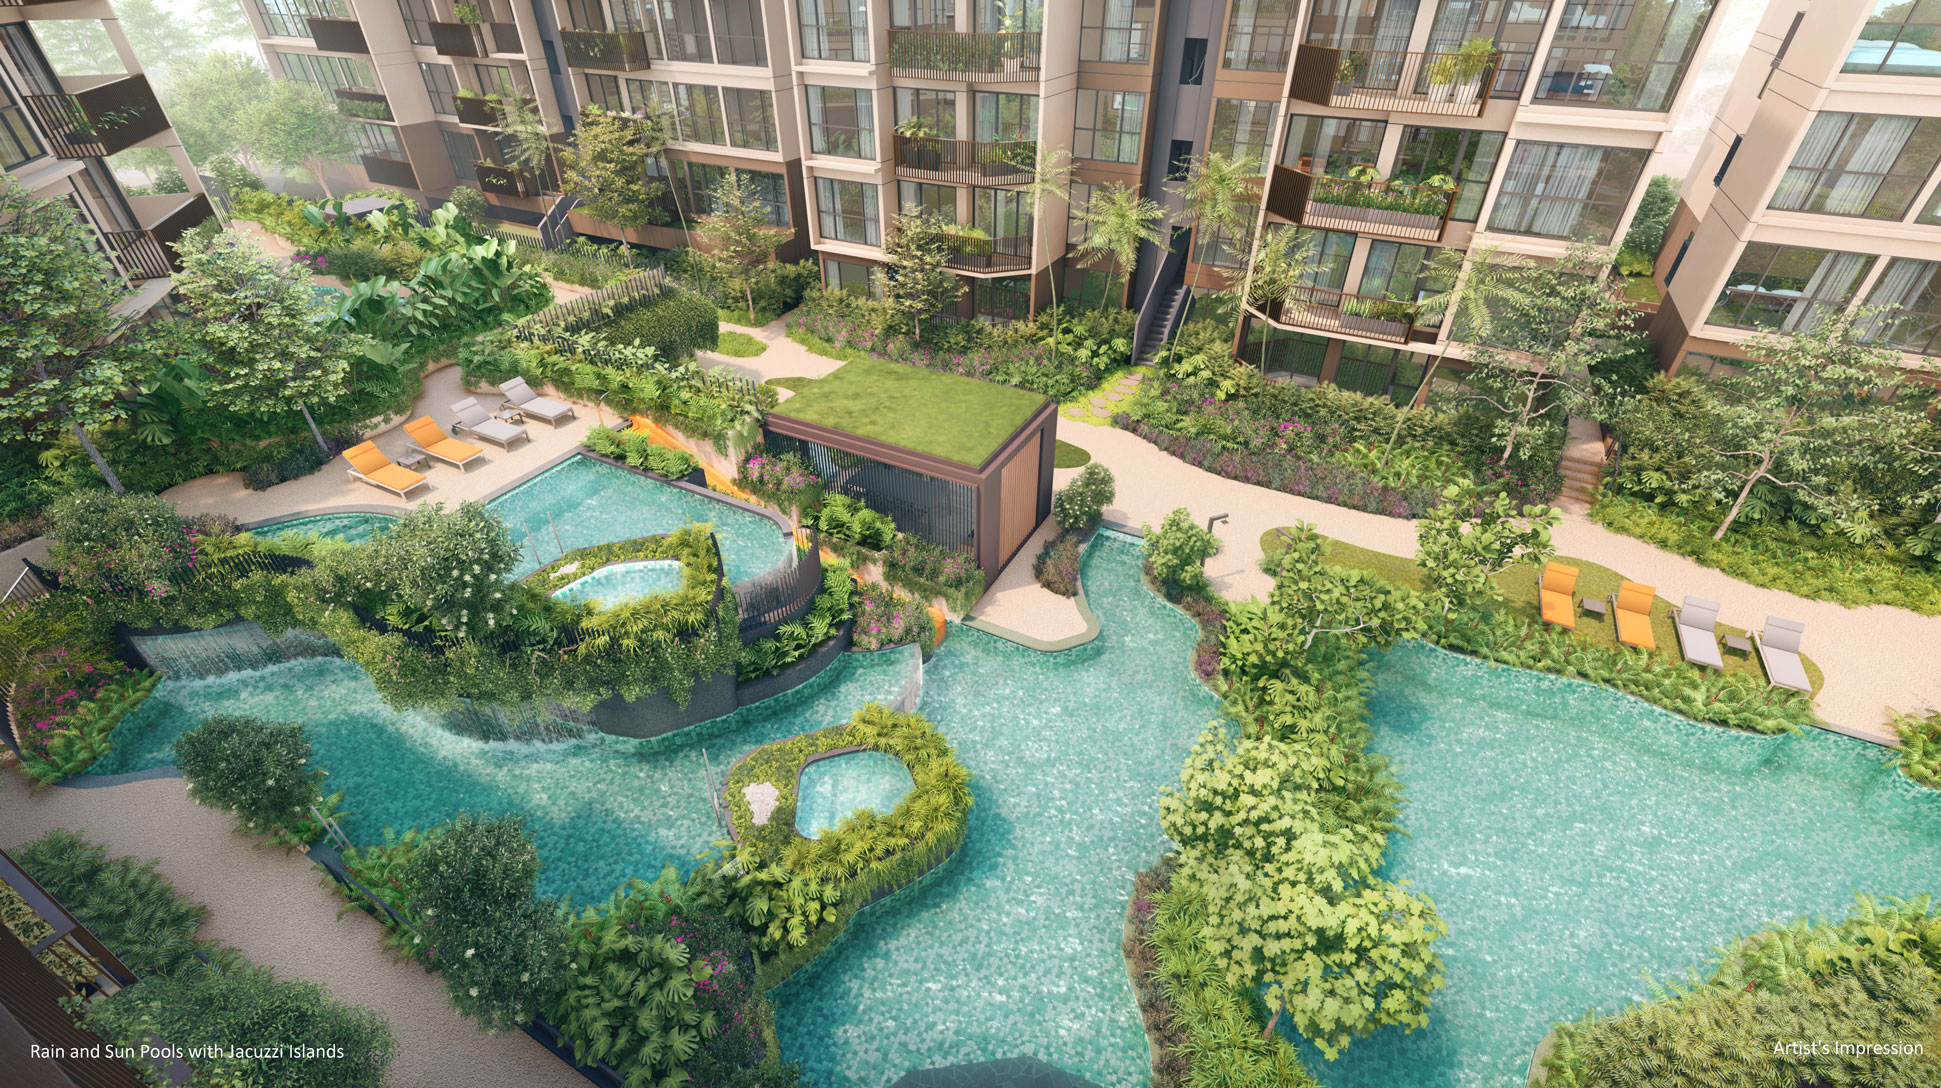 the-watergardens-at-canberra-by-UOL-Rain-and-Sun-Pools-with-Jacuzzi-Islands